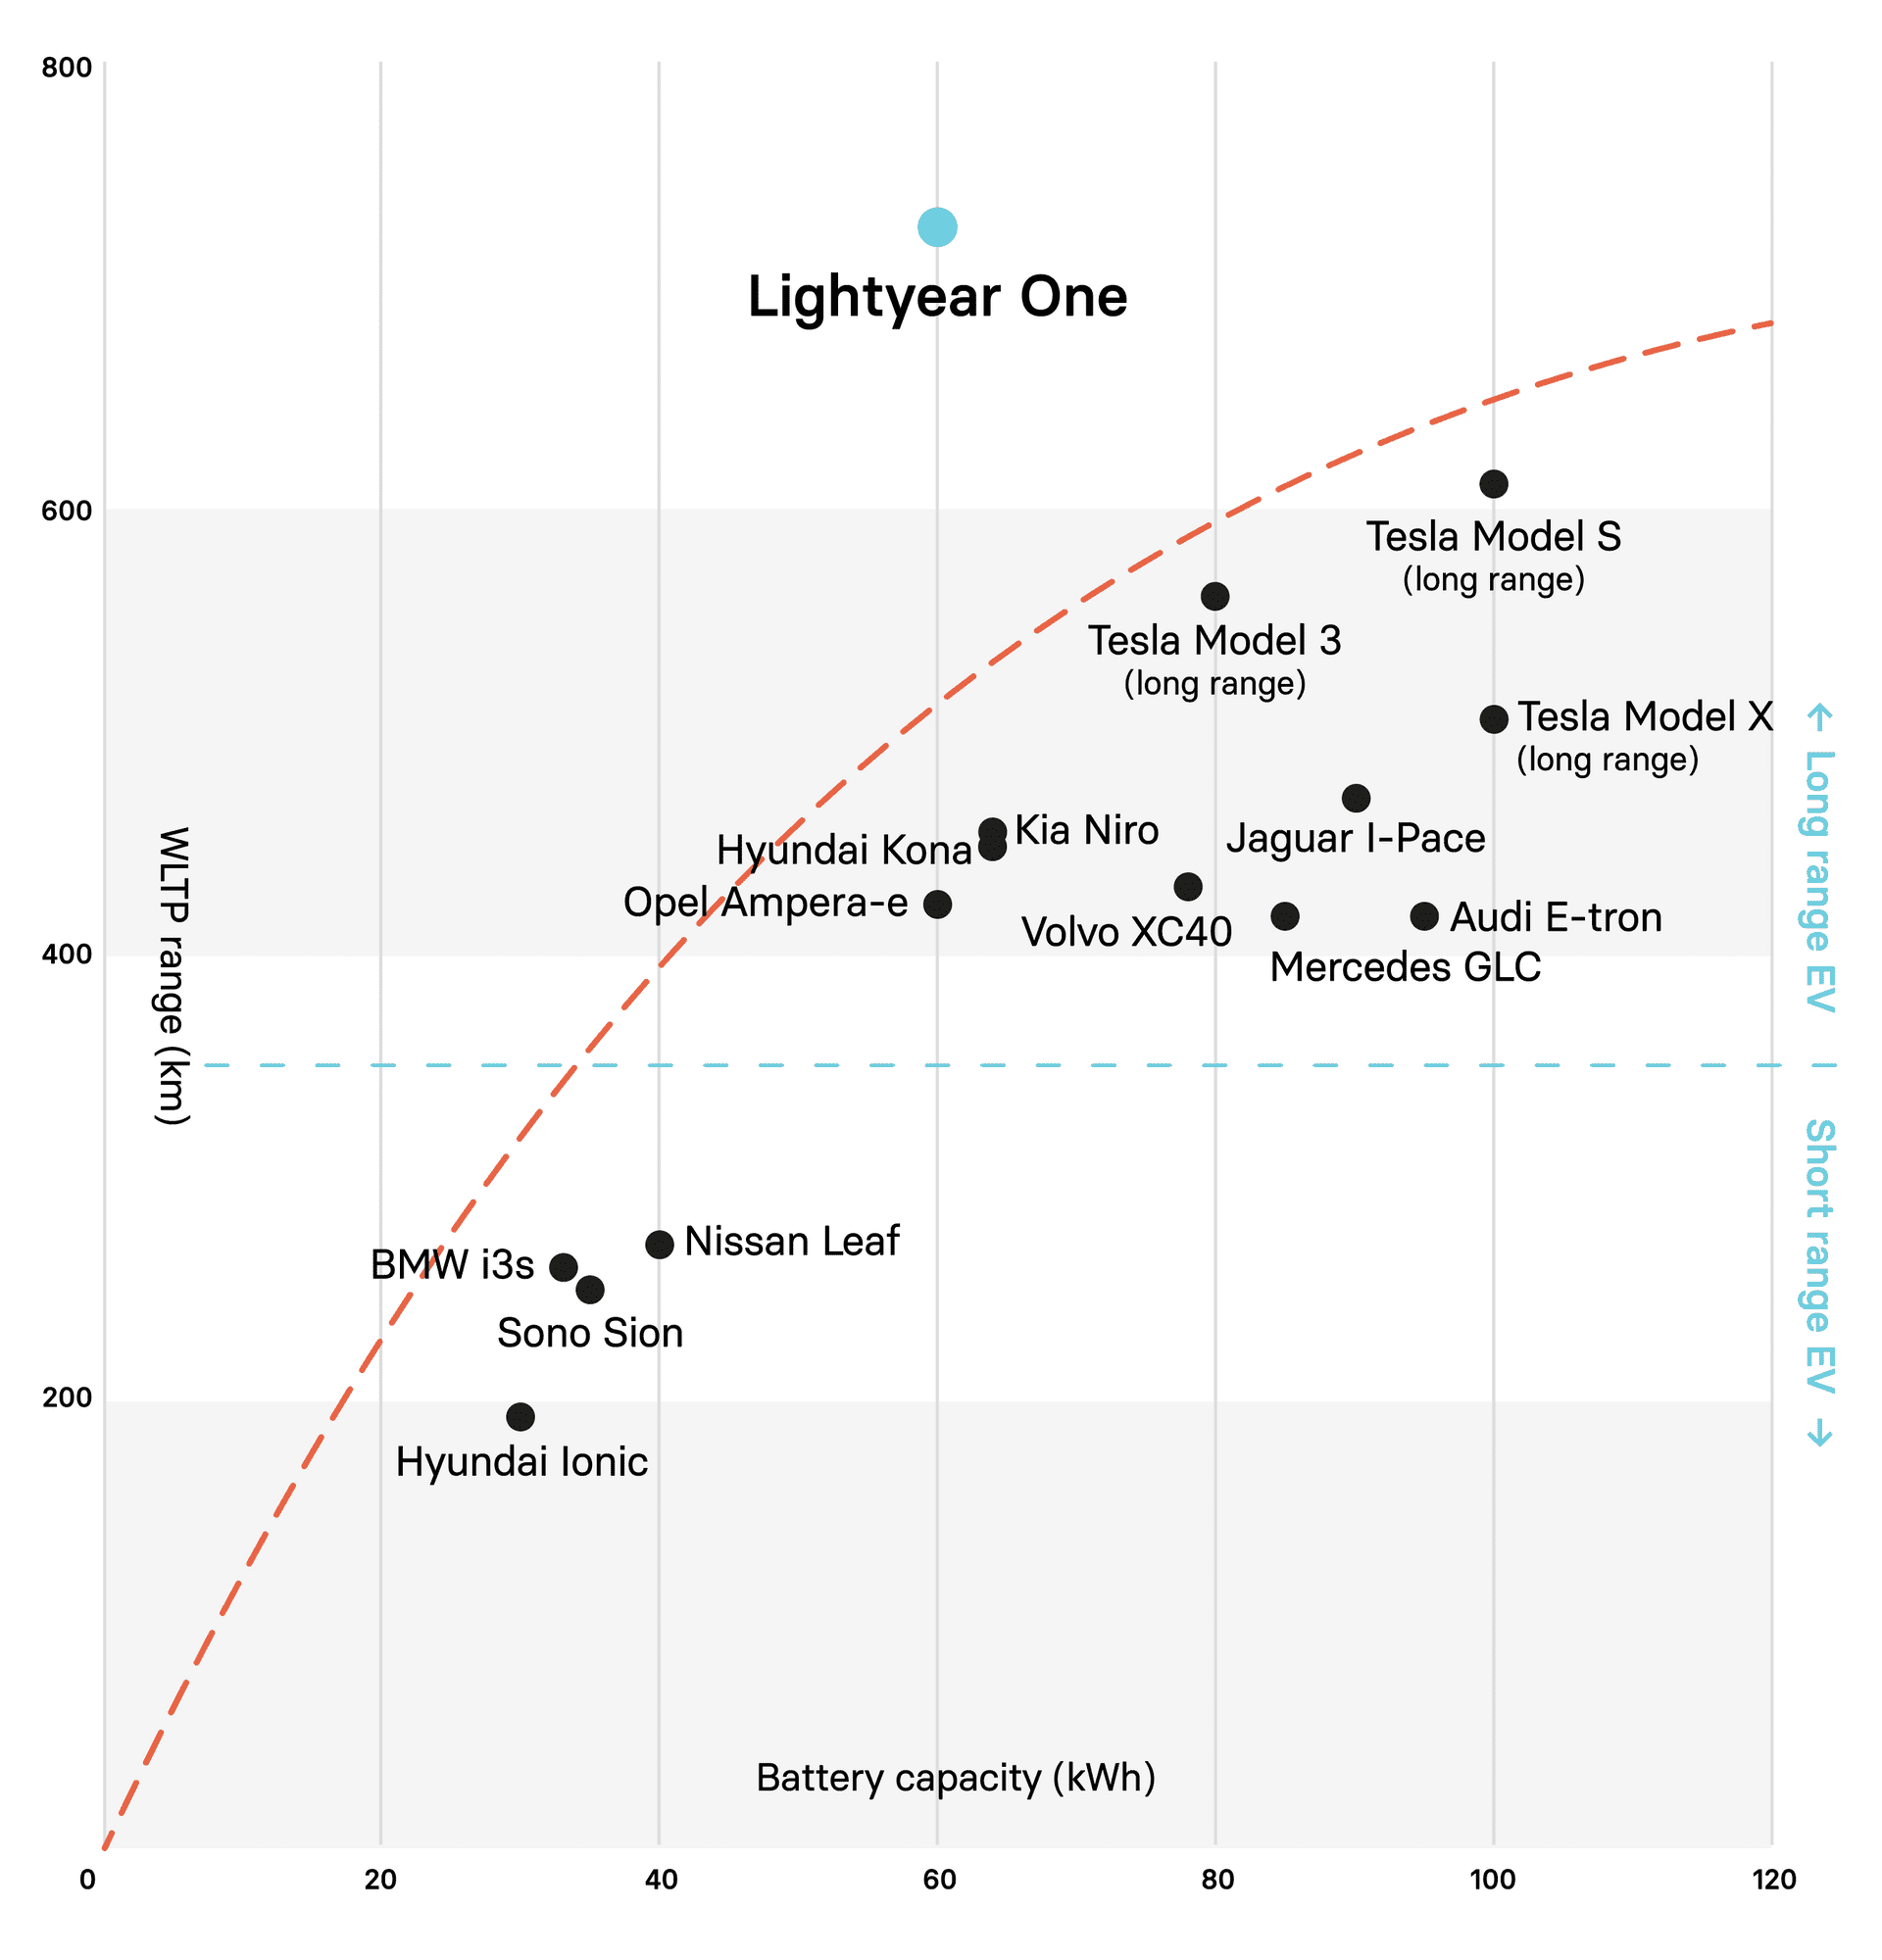 The trade-off between range and battery size for electric vehicles